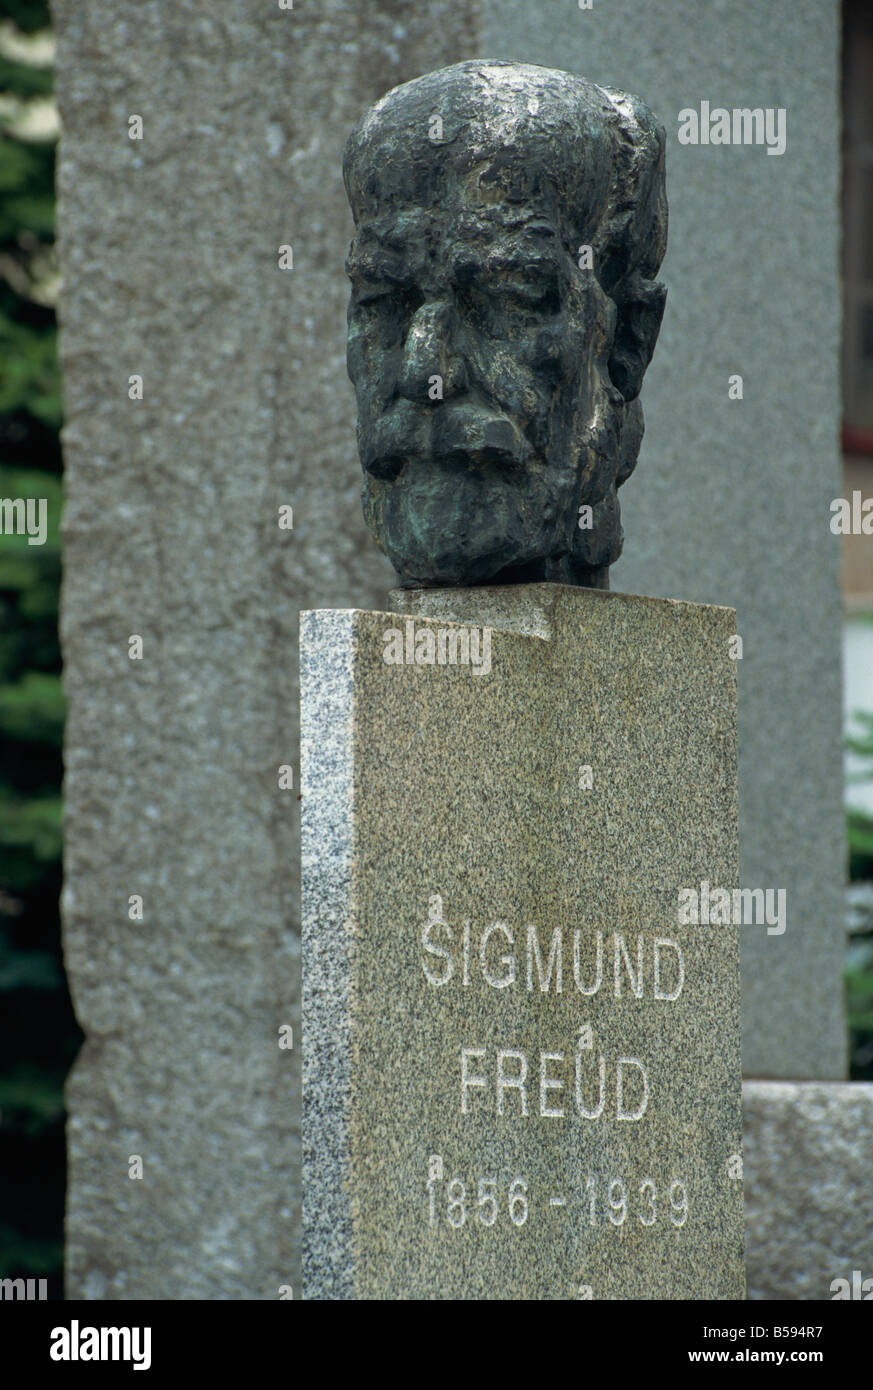 Birthplace of Sigmund Freud, Freiberg, Moravia, Czech Republic, Europe - Stock Image